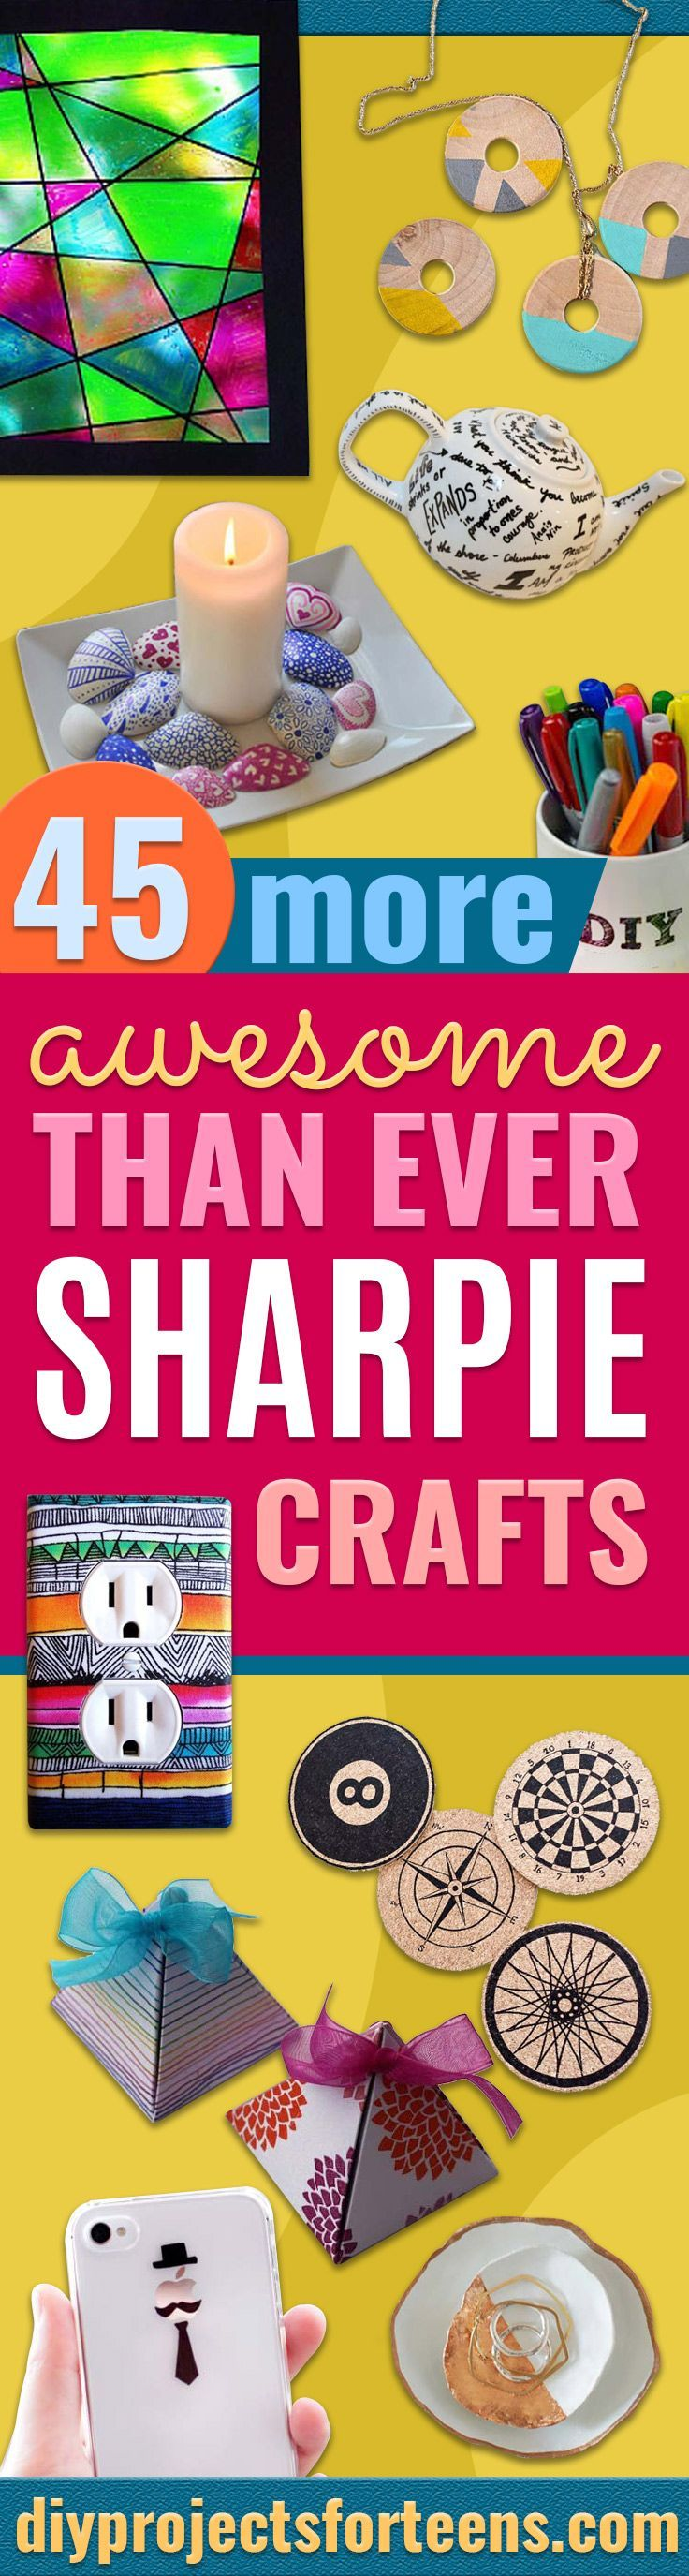 """Do you love cool and easy projects that cost almost no money but make you say """"Wow!"""" If so, then you are going to be super excited for these DIY sharpie tutorials. If you've not yet seen the awesome crafts, wall art and clever gifts you can make only using permanent markers, these are all going to b"""